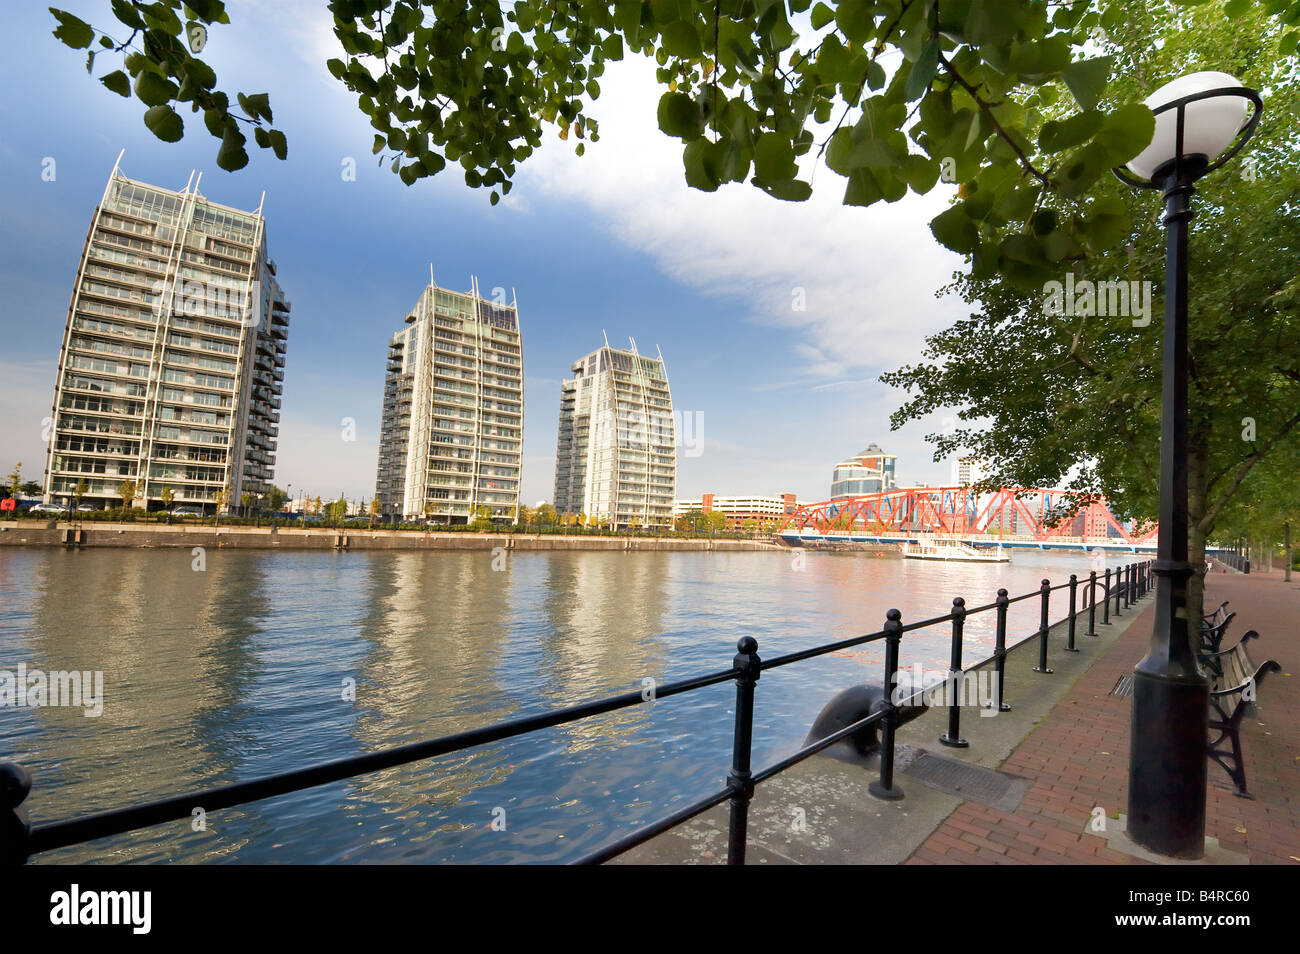 Salford Quays waterfront flats  in Manchester,Great Britain - Stock Image